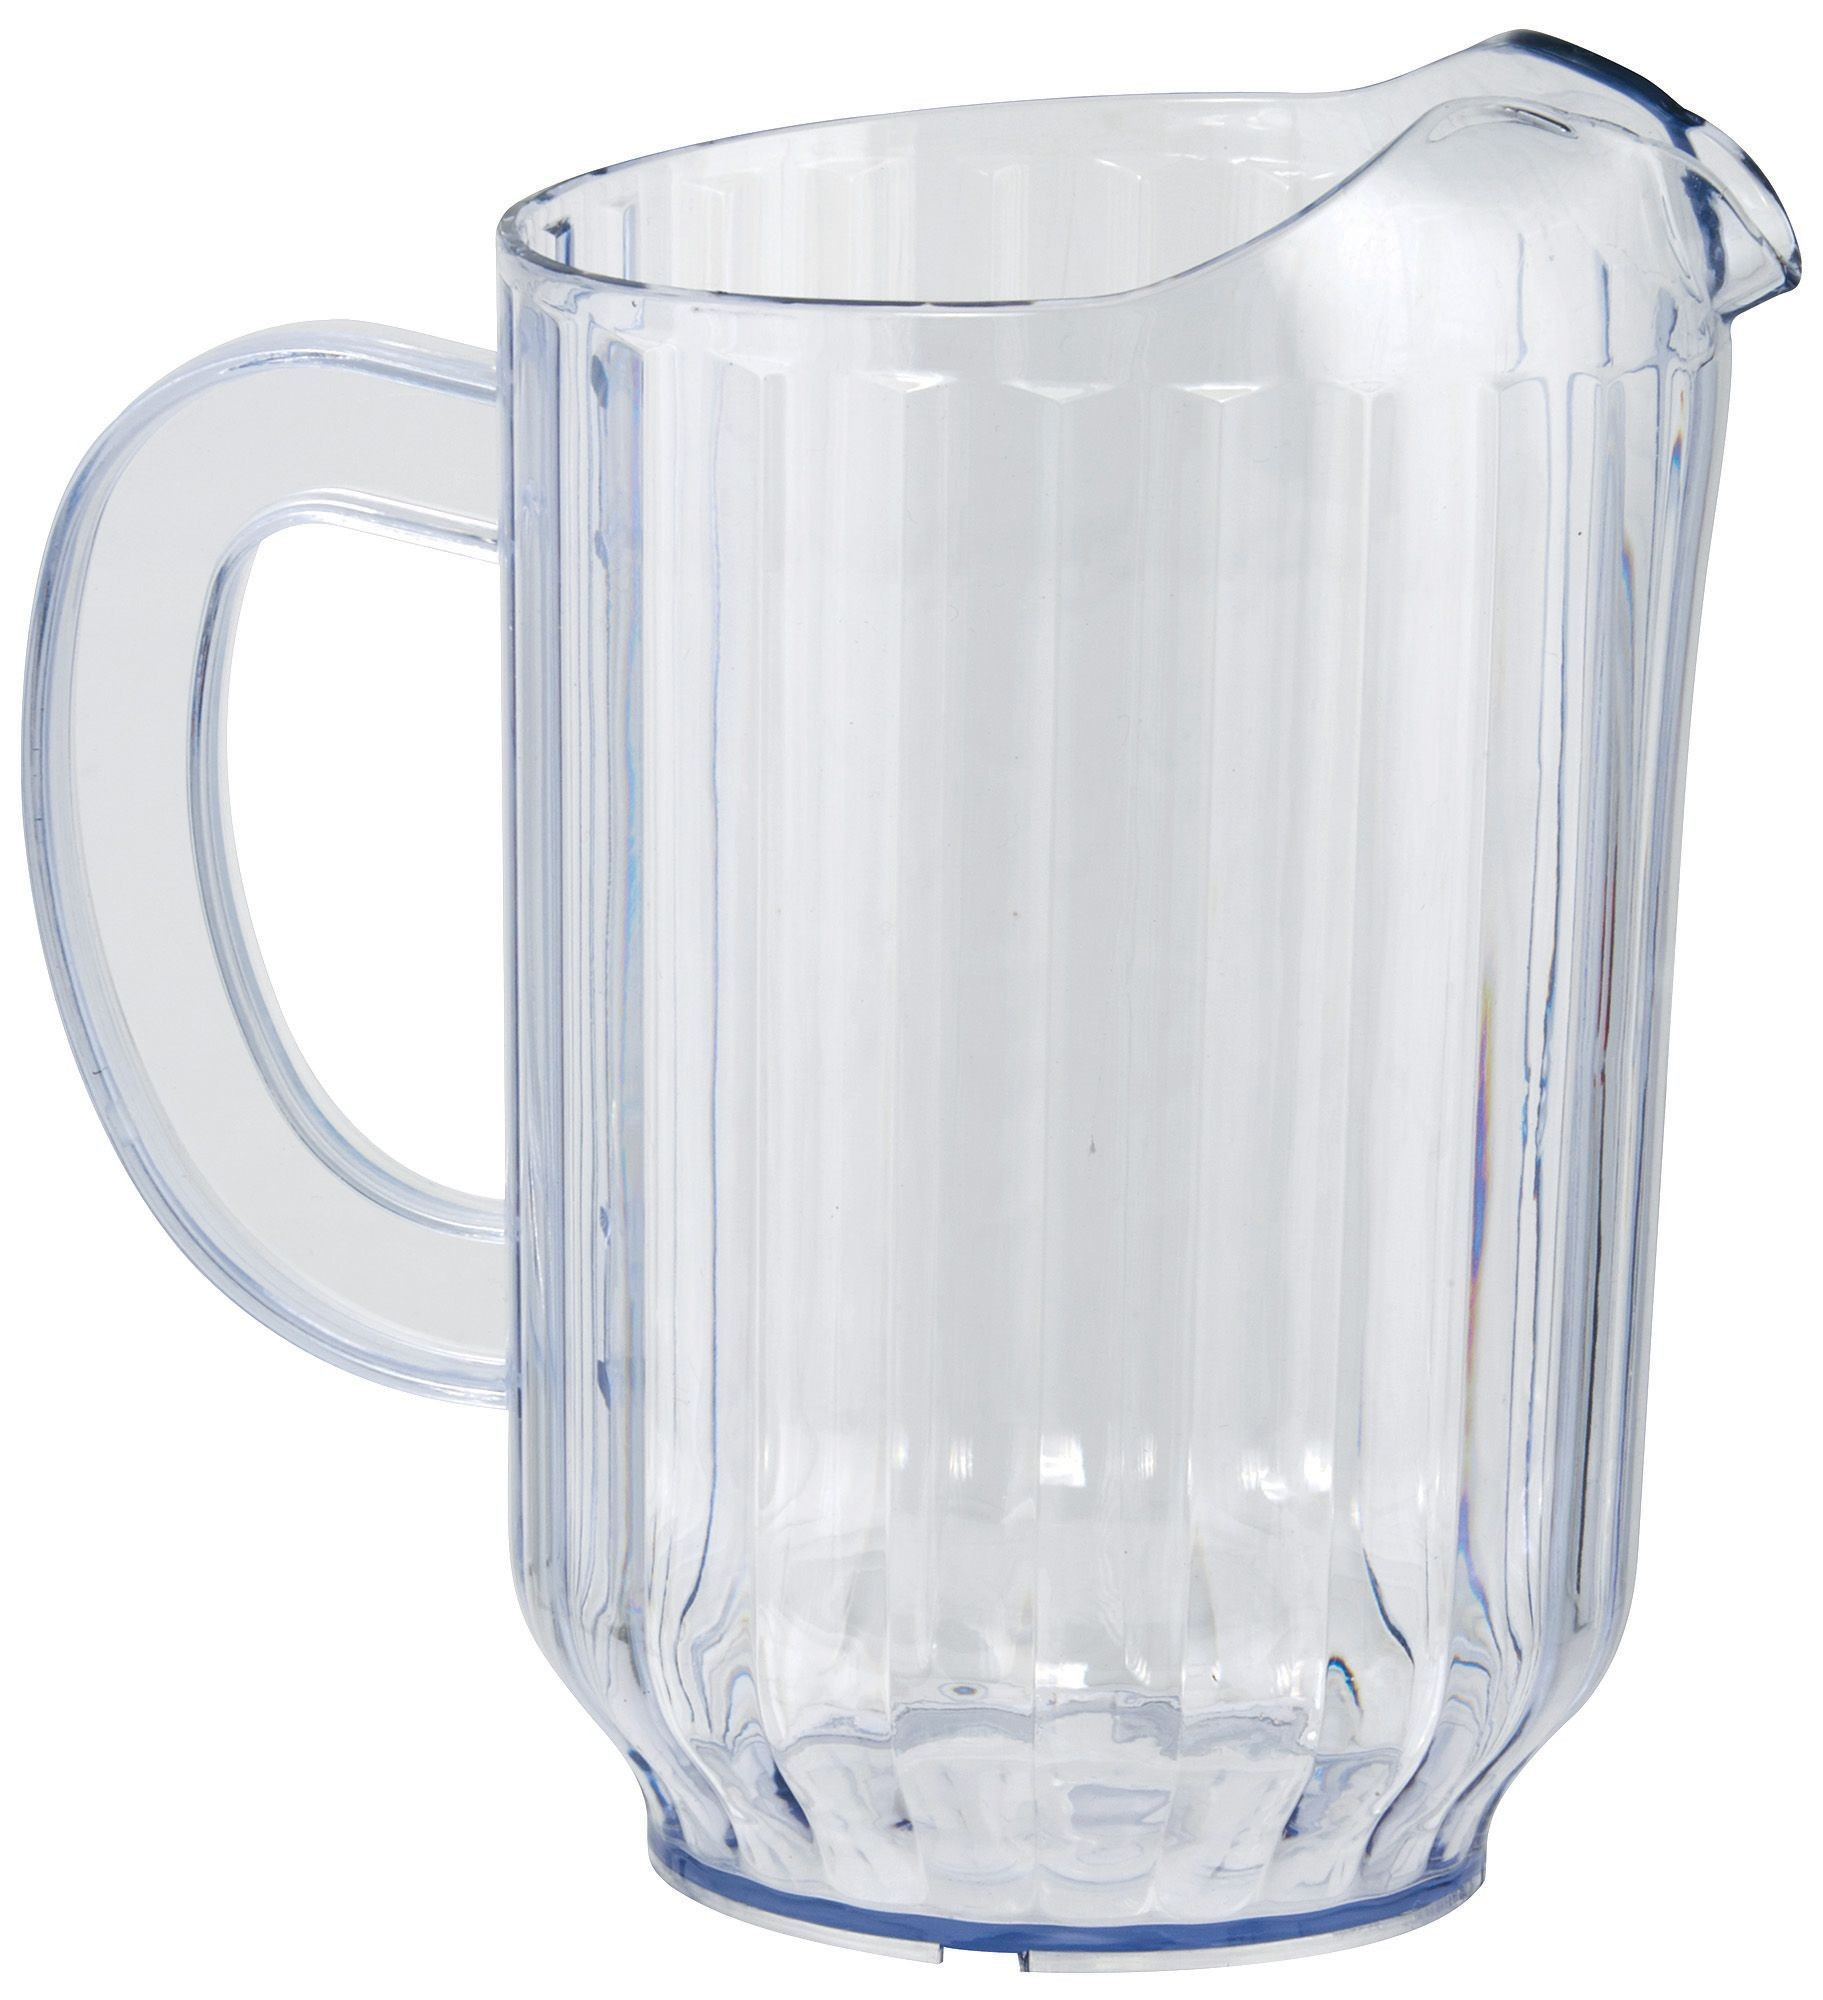 60Oz Plastic Water Pitcher (4Pc/Pack)